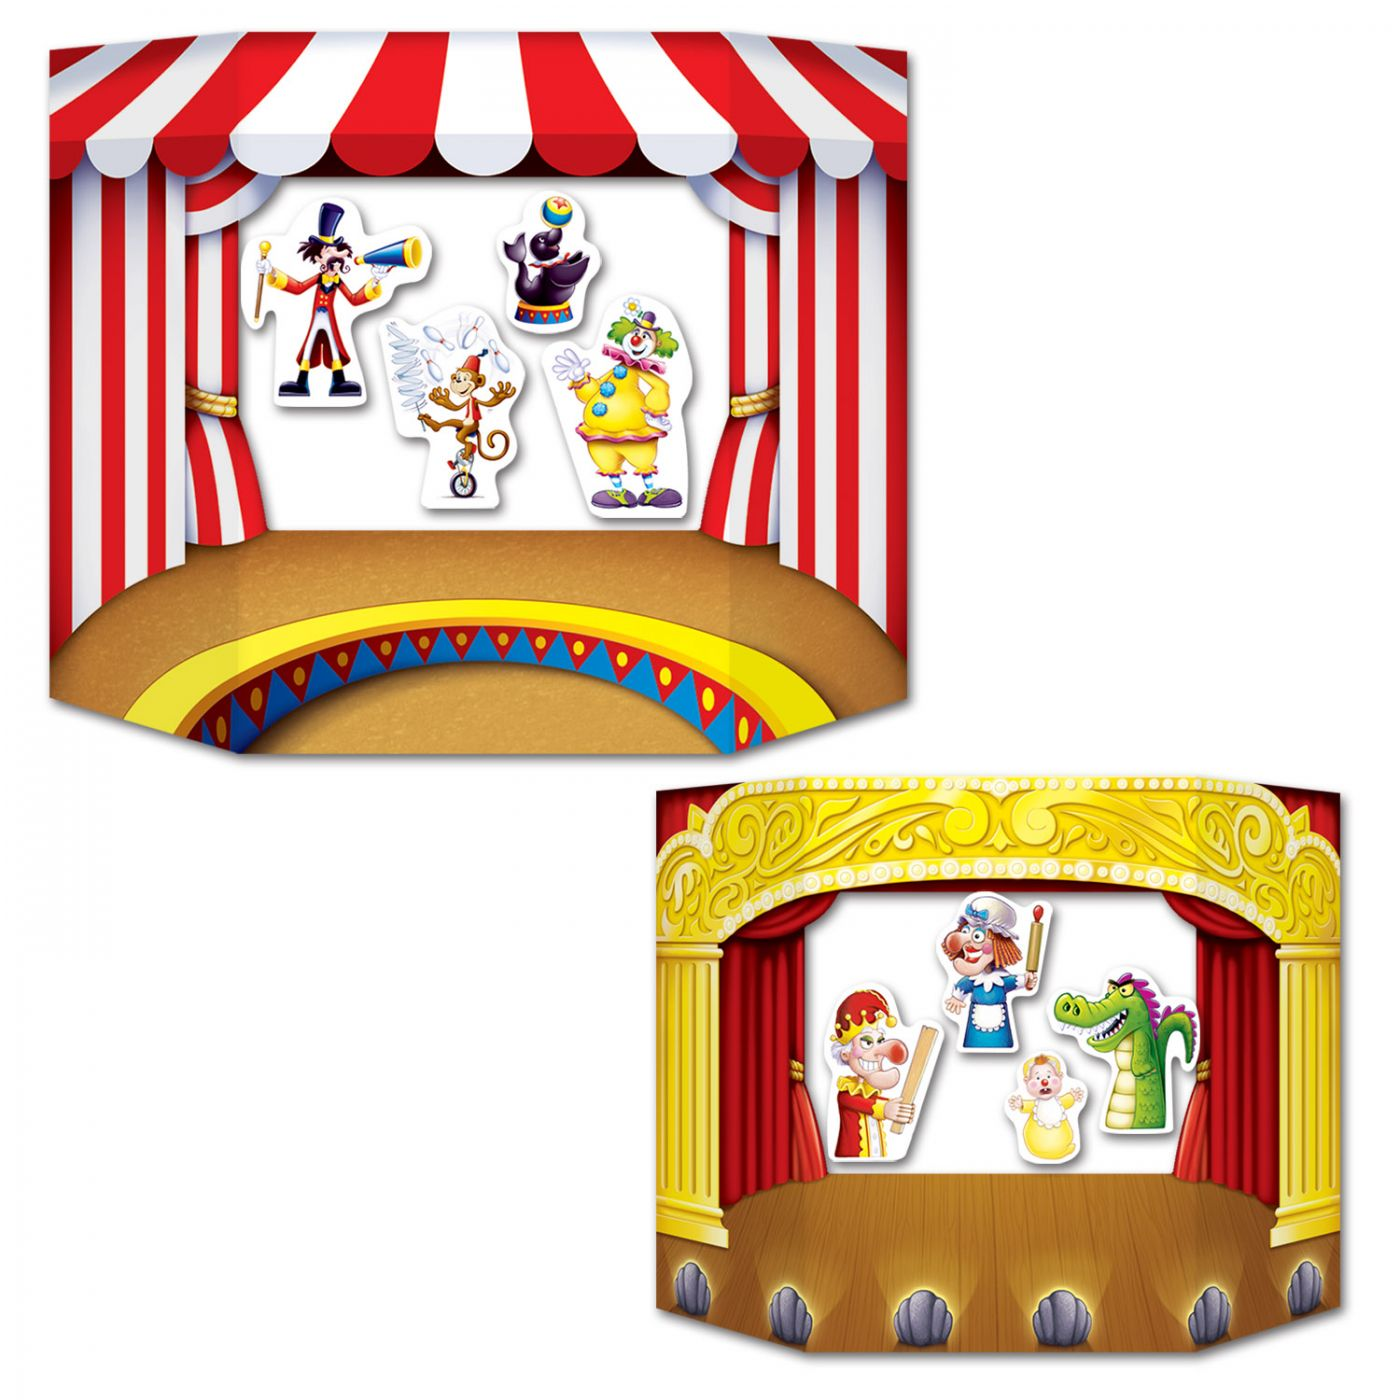 Puppet Show Theater Photo Prop (6) image